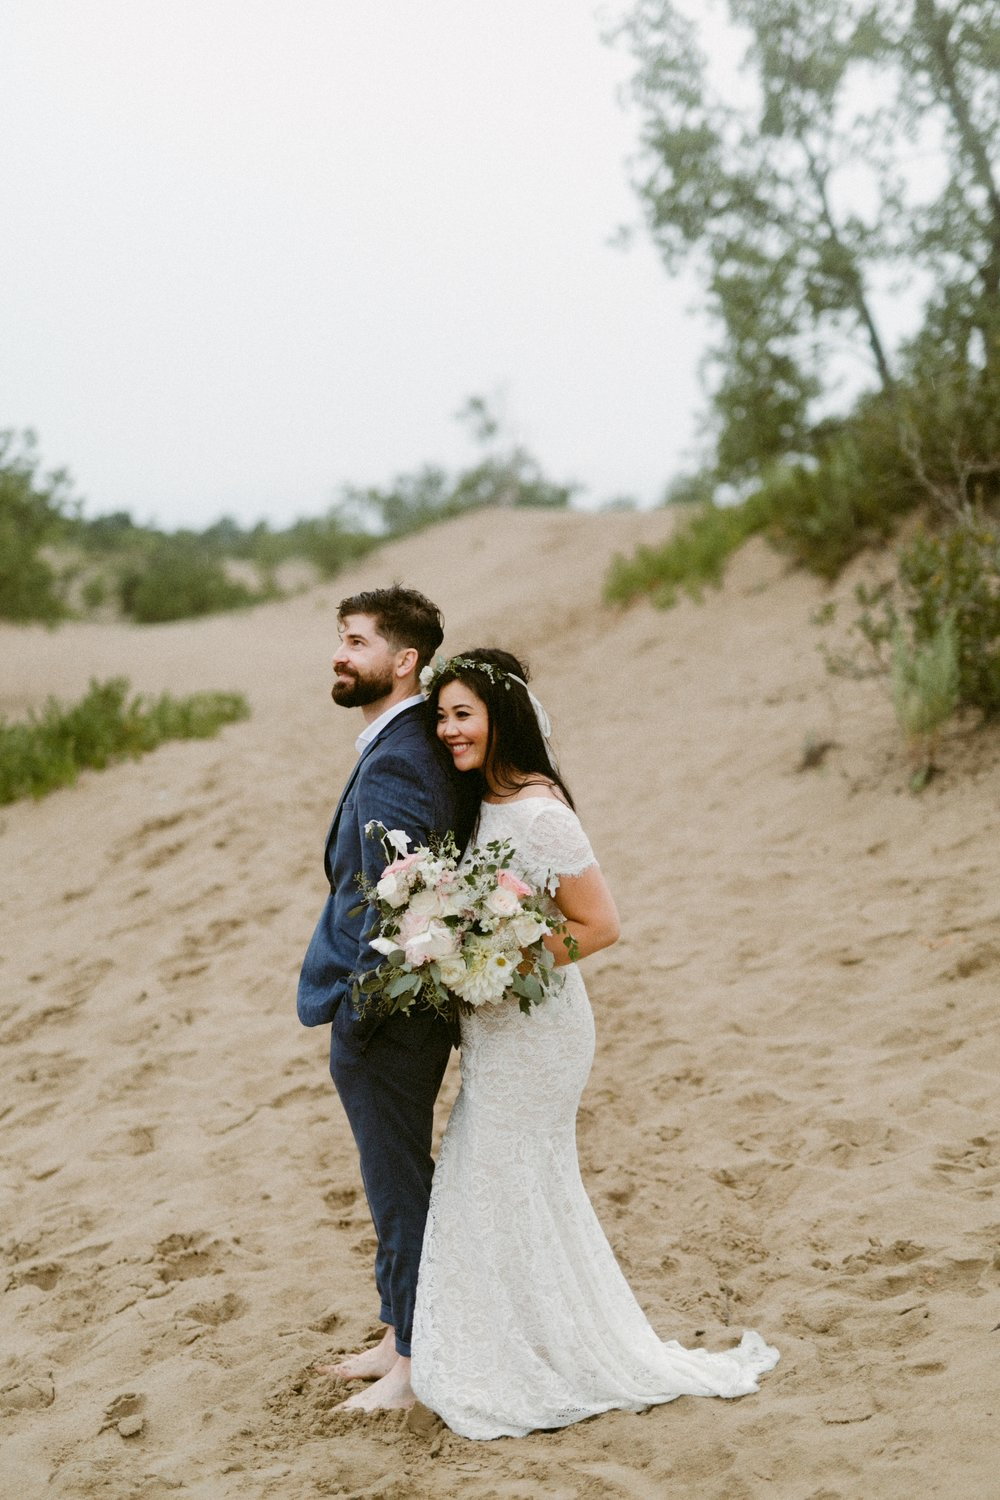 Drake Devonshire + Northern Wildflower +Elopement (125 of 169).jpg